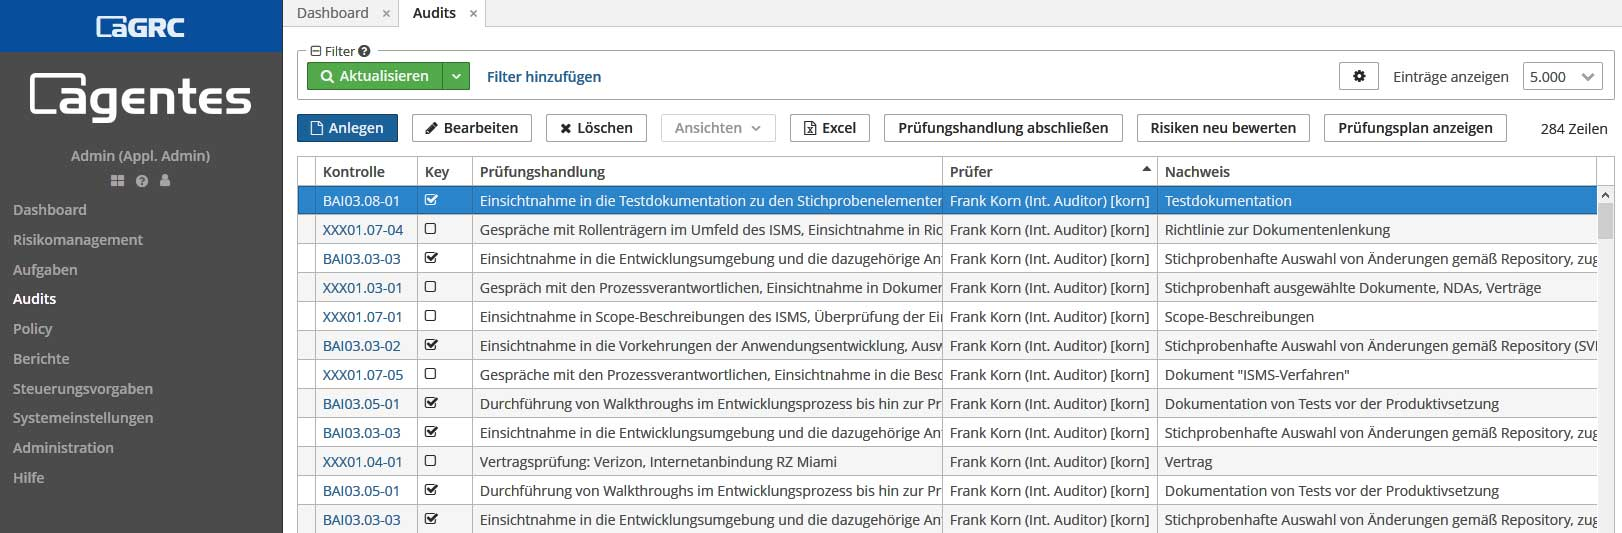 aGRC Software - Audit/Prüfung